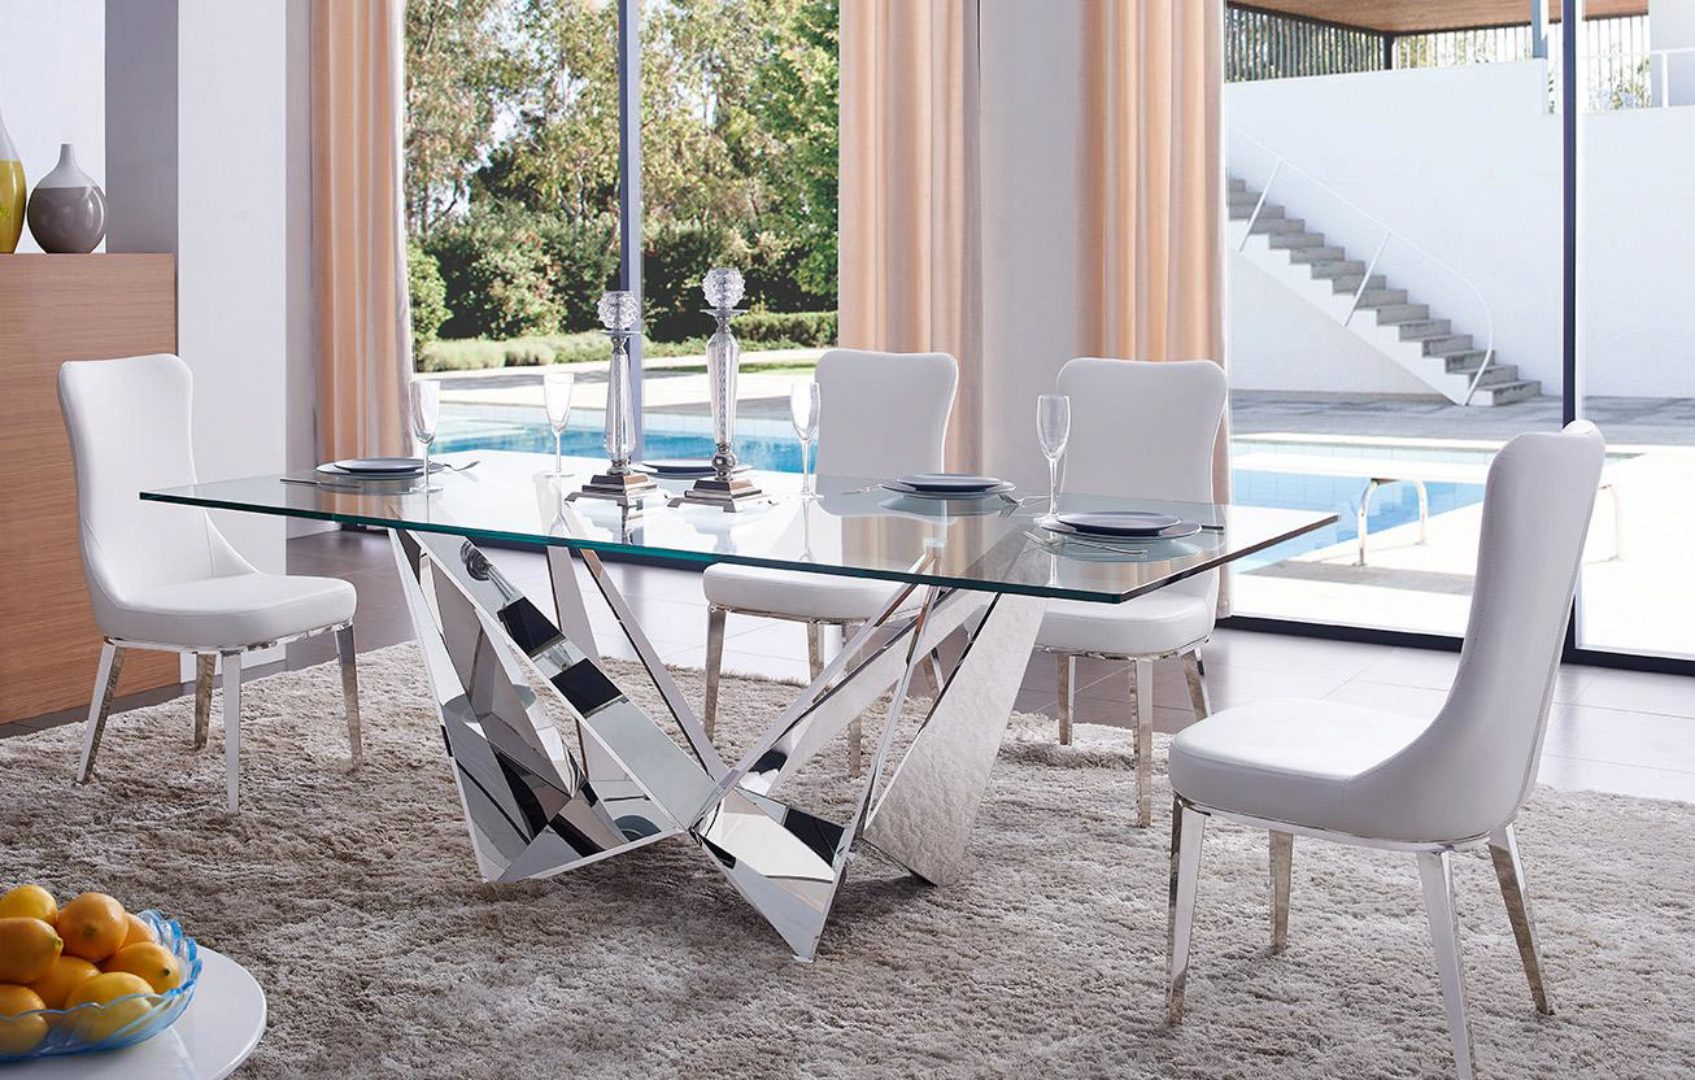 Dining Chairs For Sale Buy Dining Chairs For Dining Kitchen Online